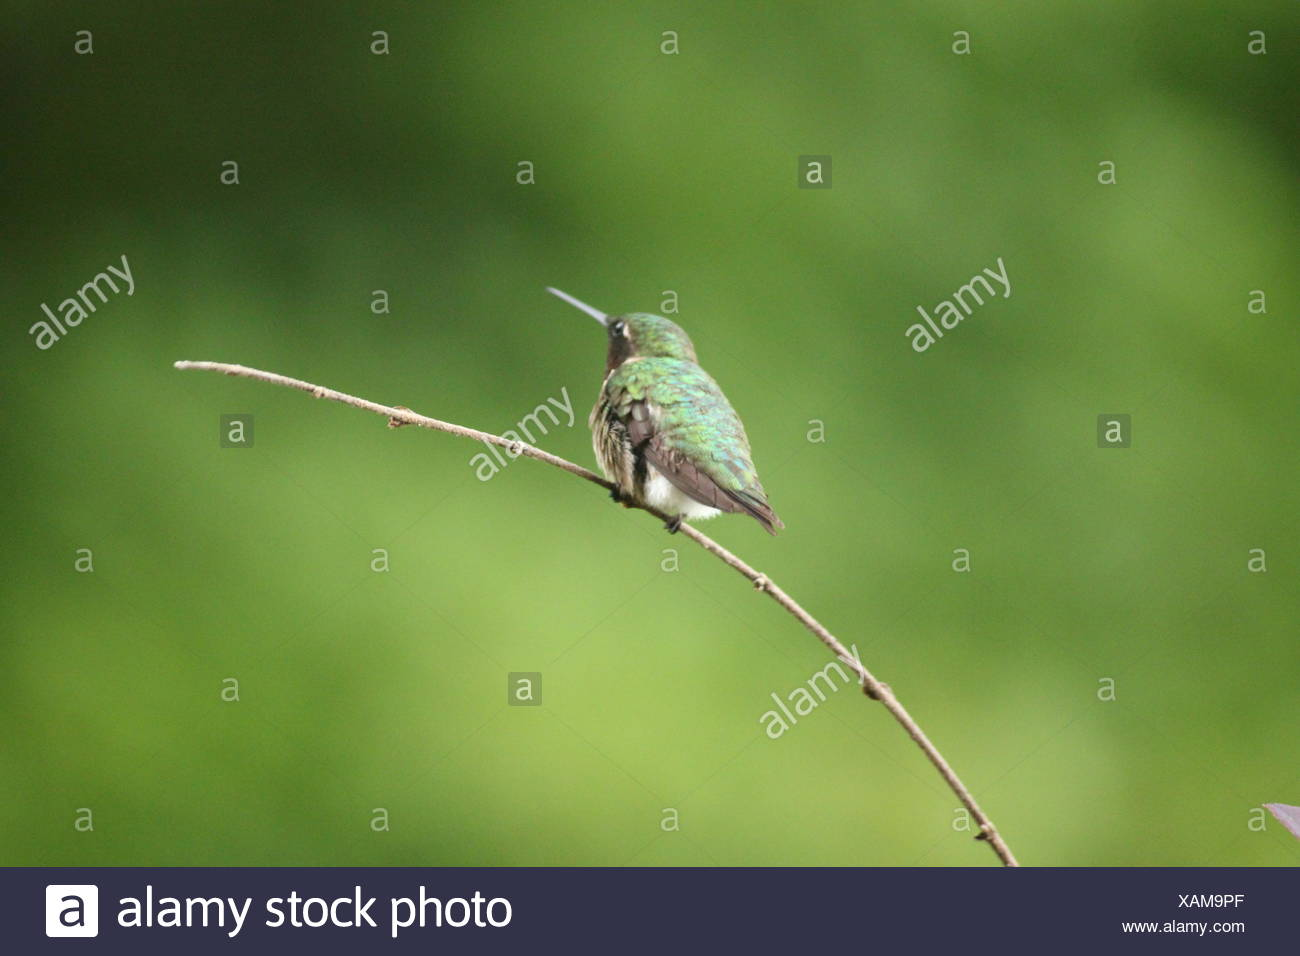 Humming bird perching on twig Stock Photo